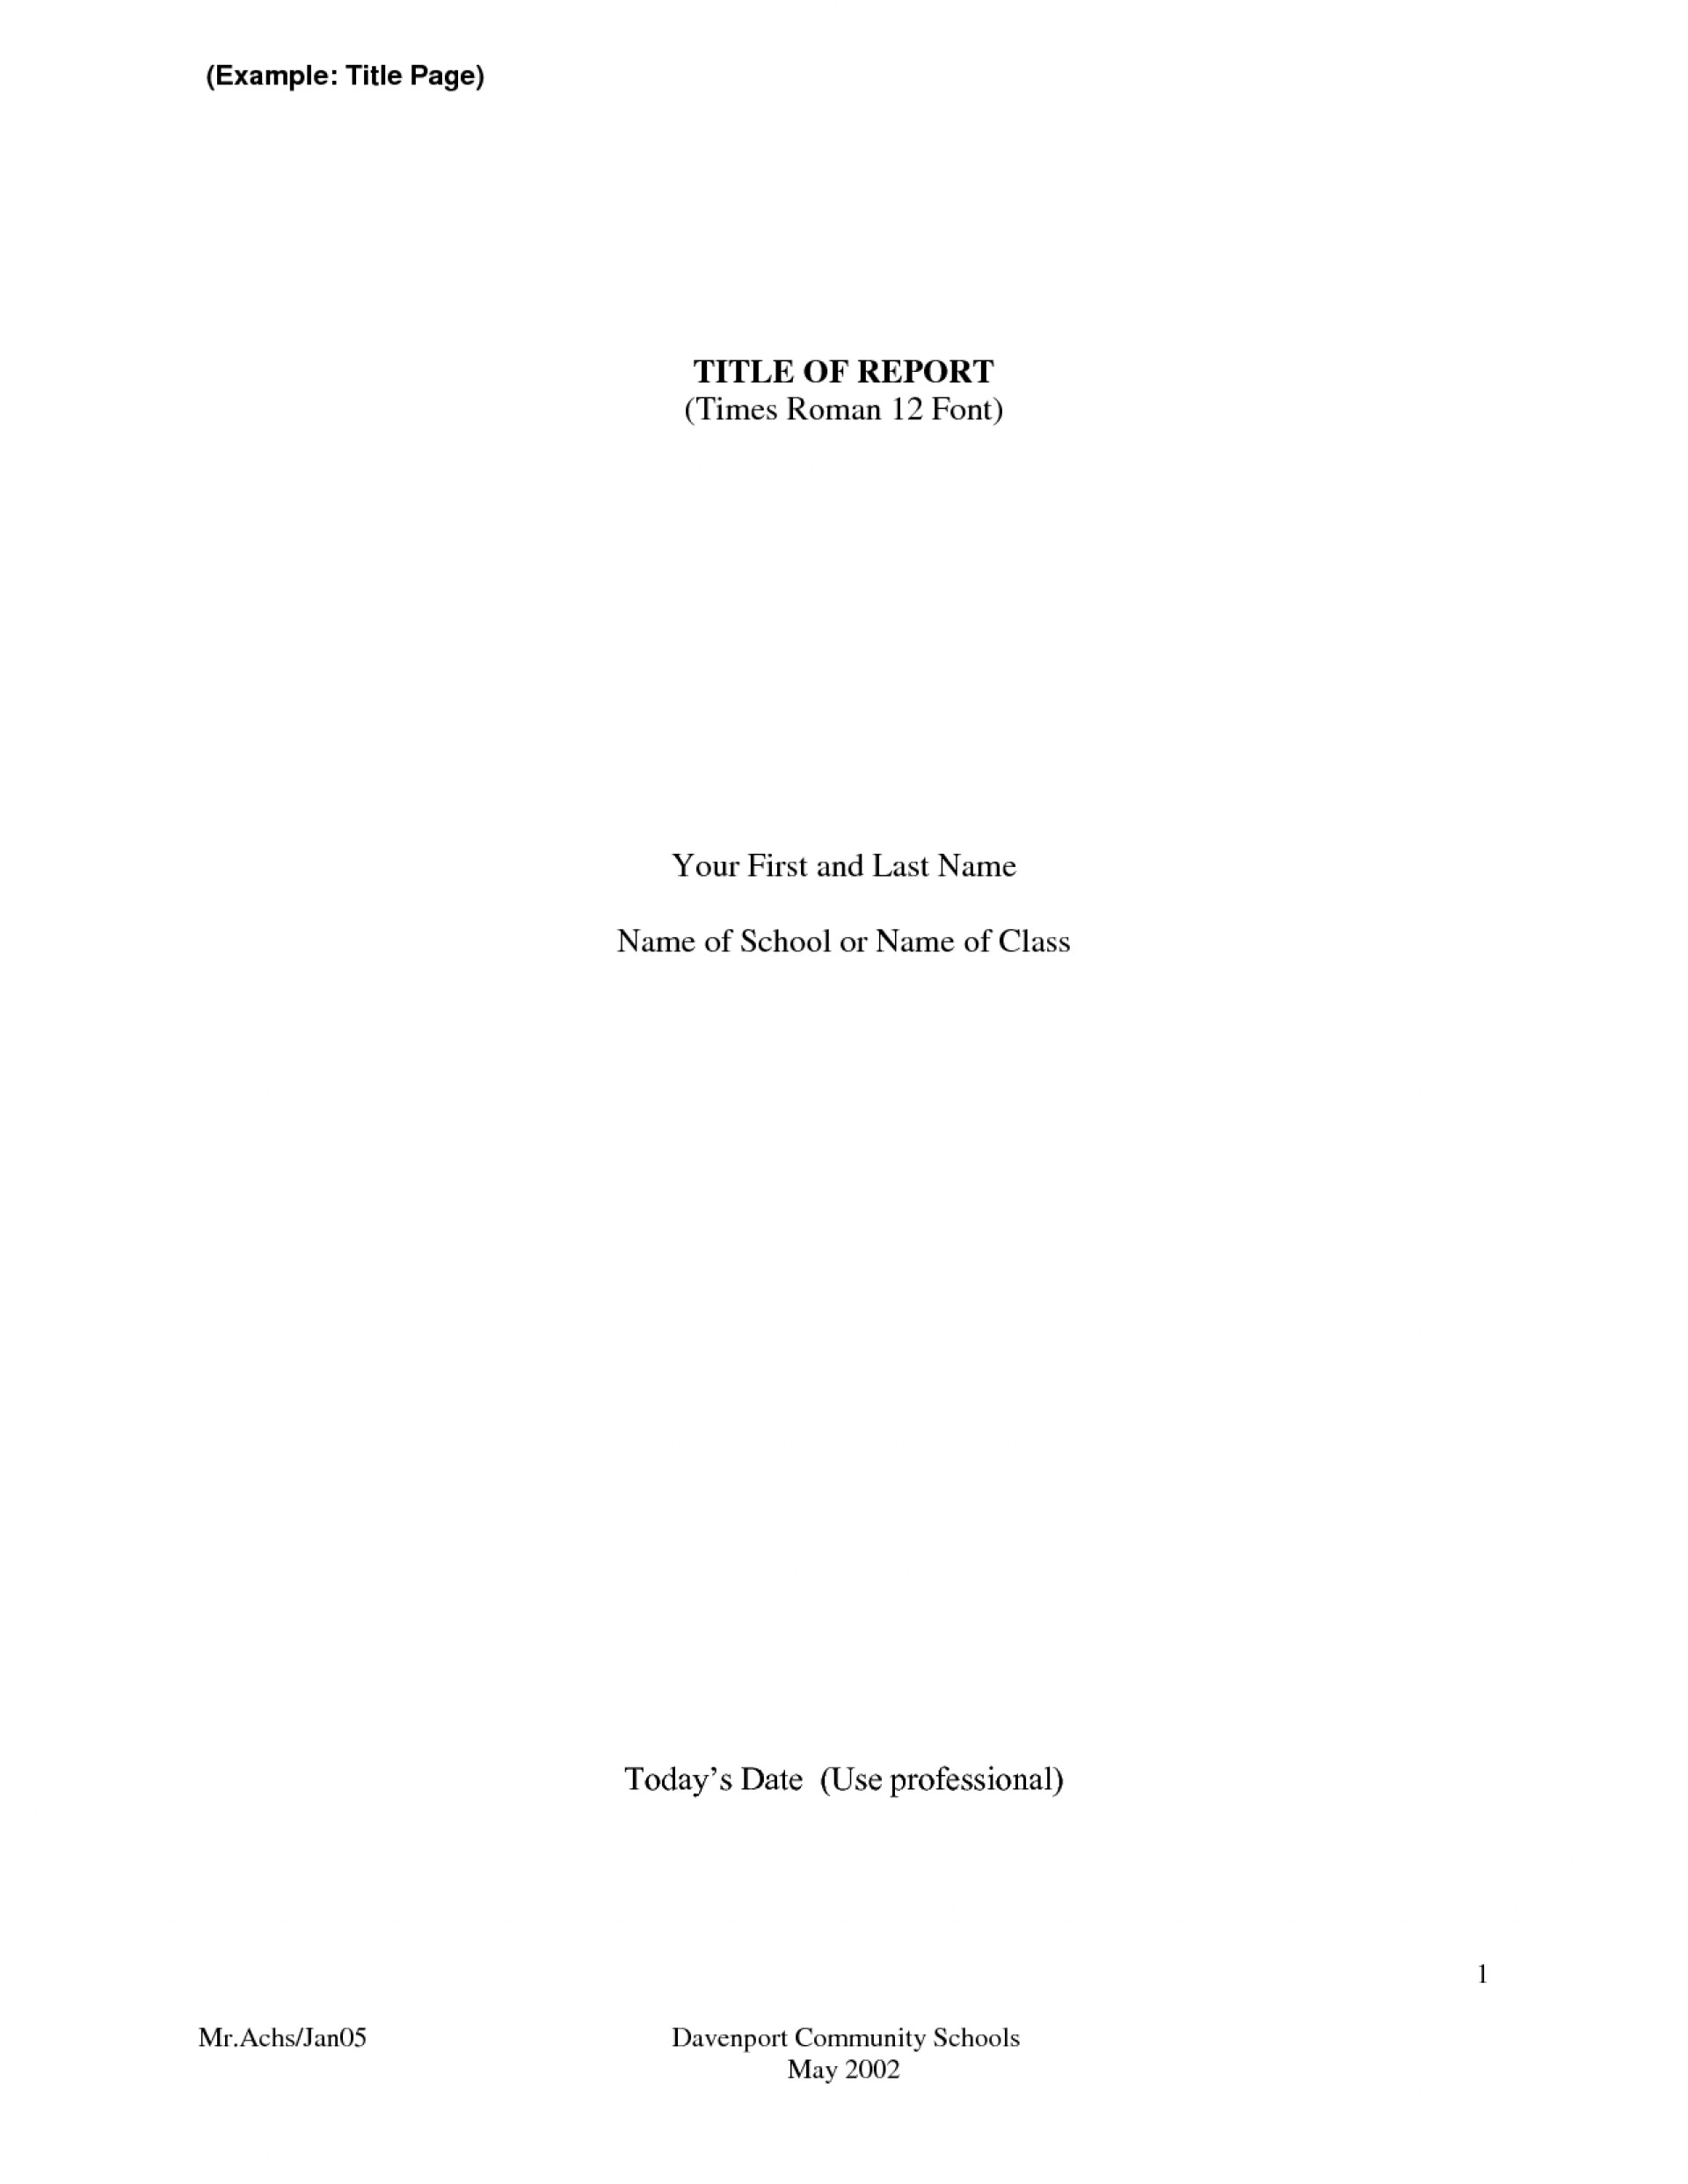 007 Research Paper Brilliant Ideas Of Title Page Example Apa Format Sample Cover For Amazing Titles First Unique Mla Style The A 1920